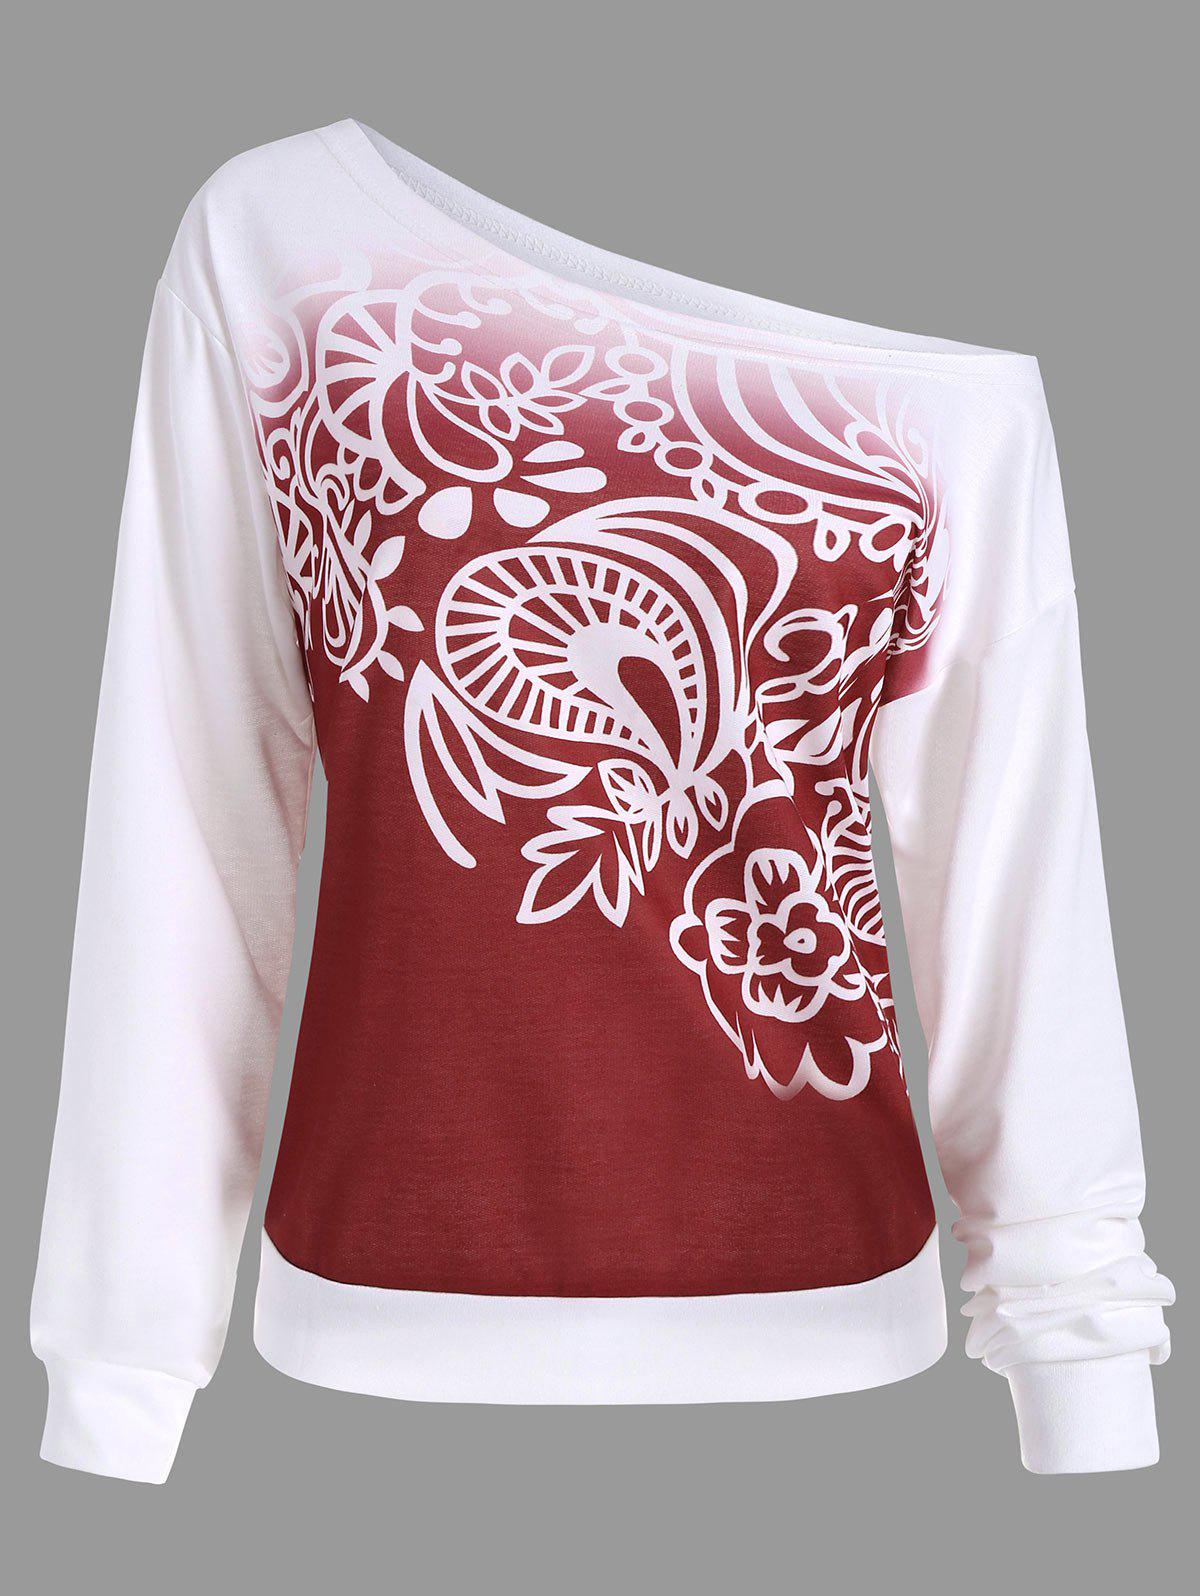 Printed Ombre Long Sleeve SweatshirtWOMEN<br><br>Size: M; Color: RED; Material: Polyester; Shirt Length: Regular; Sleeve Length: Full; Style: Fashion; Pattern Style: Print; Season: Fall,Winter; Weight: 0.4500kg; Package Contents: 1 x Sweatshirt;